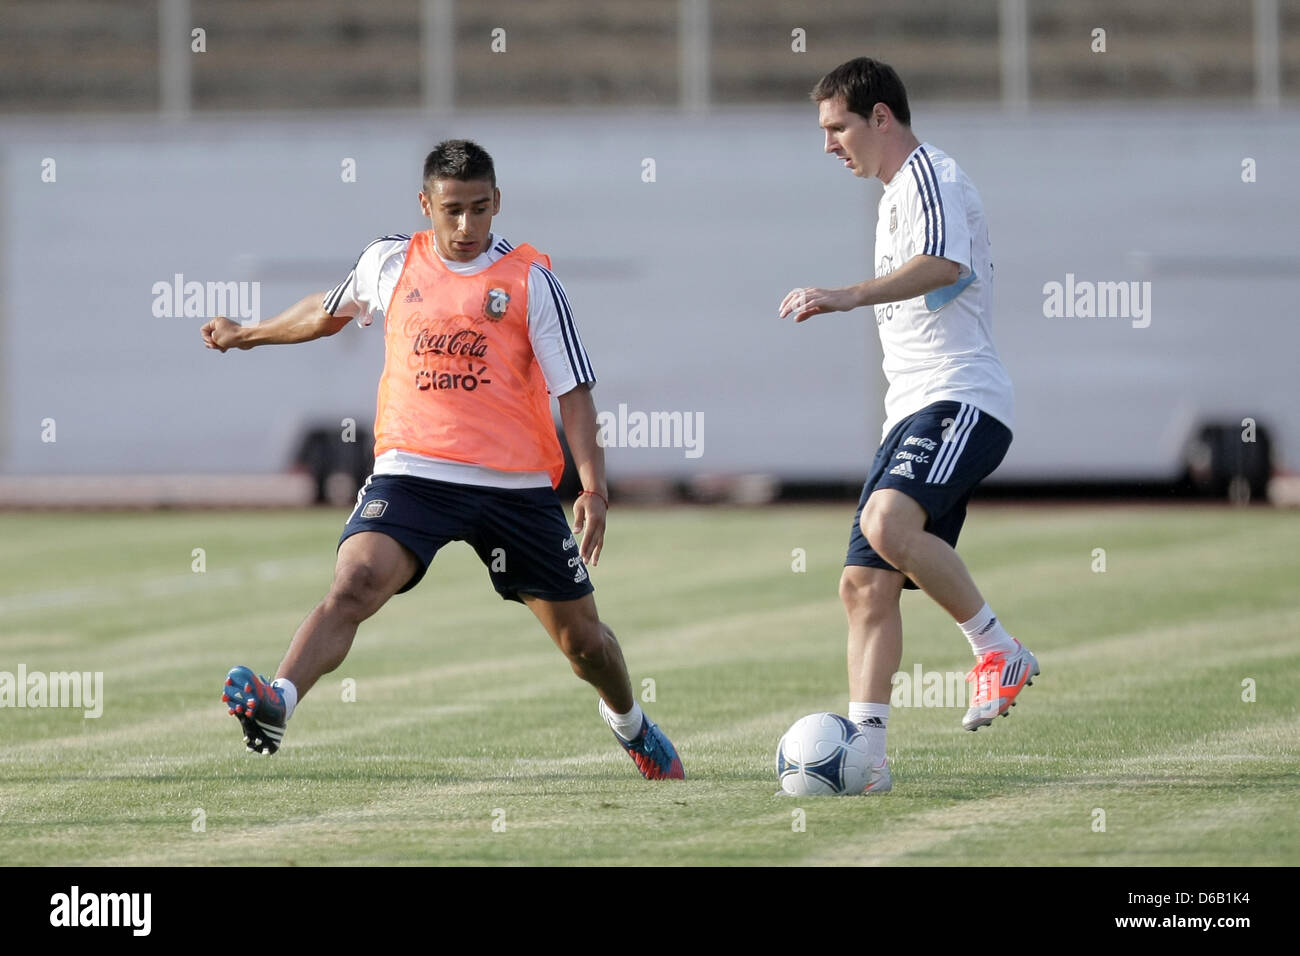 Attractive Lionel Messi Haus Decoration Of Argentine Player (r) Plays The Ball With